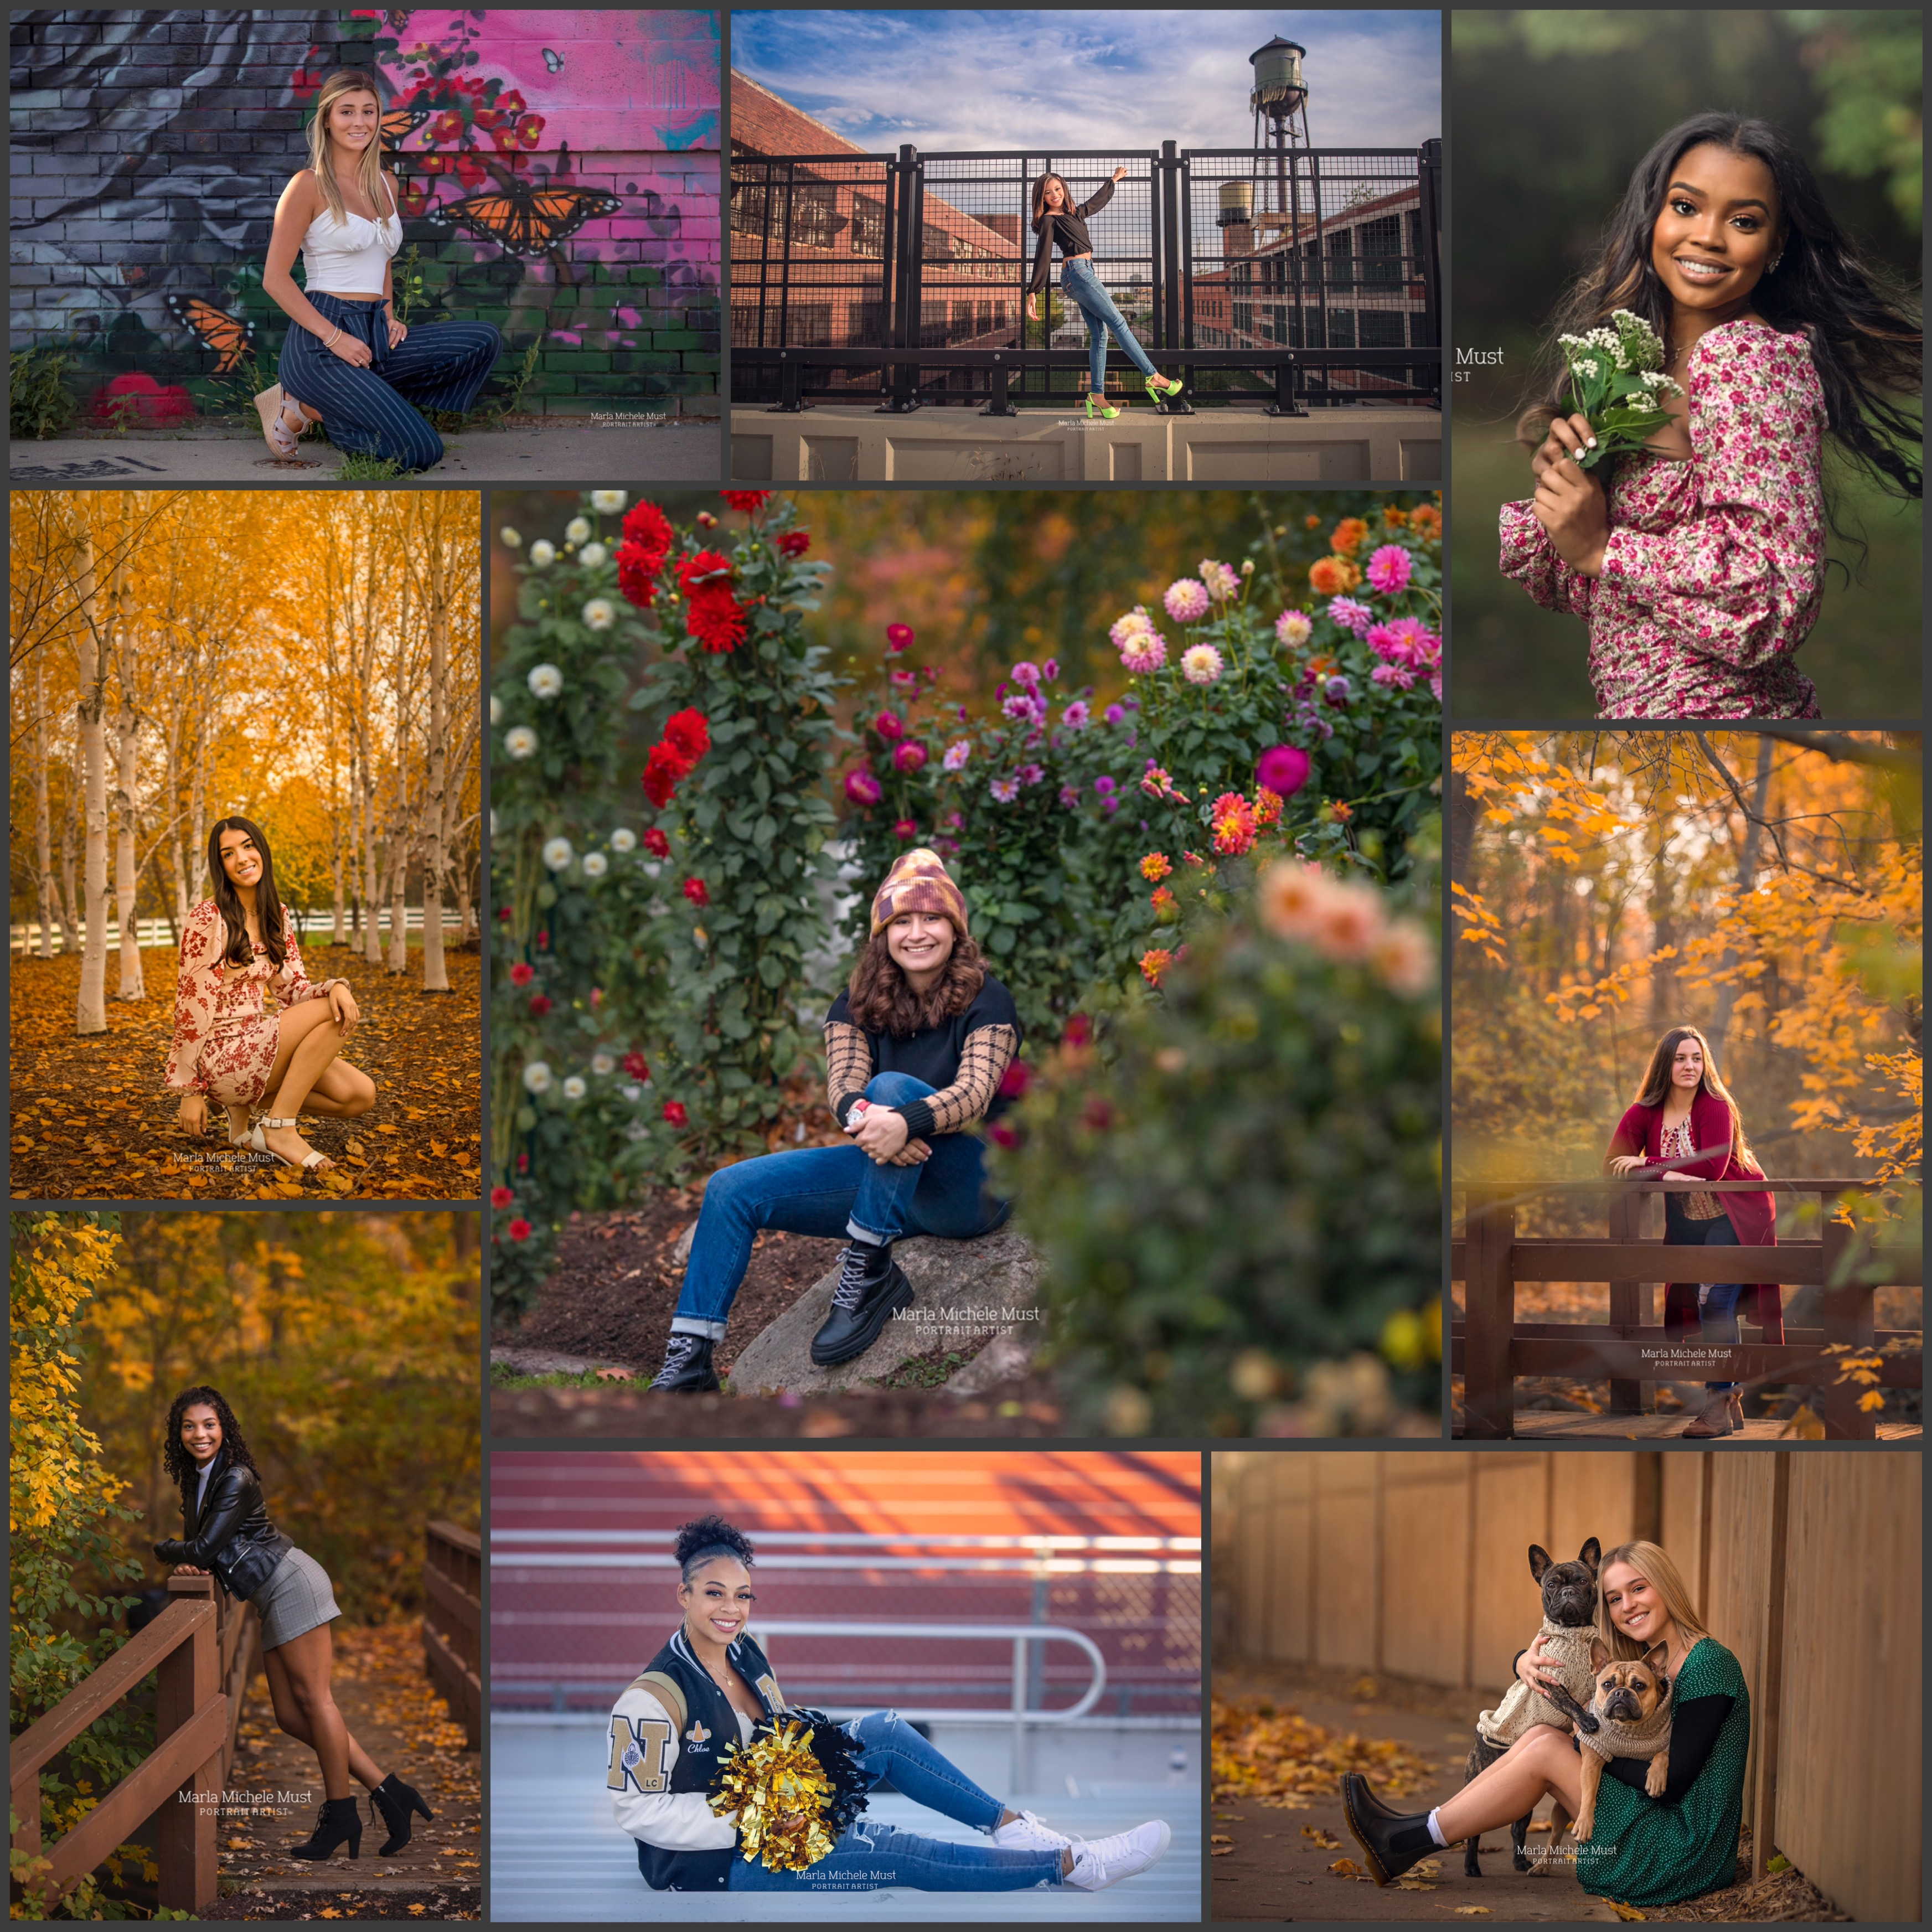 6 Things To Consider Before Booking Your High School Senior Portraits